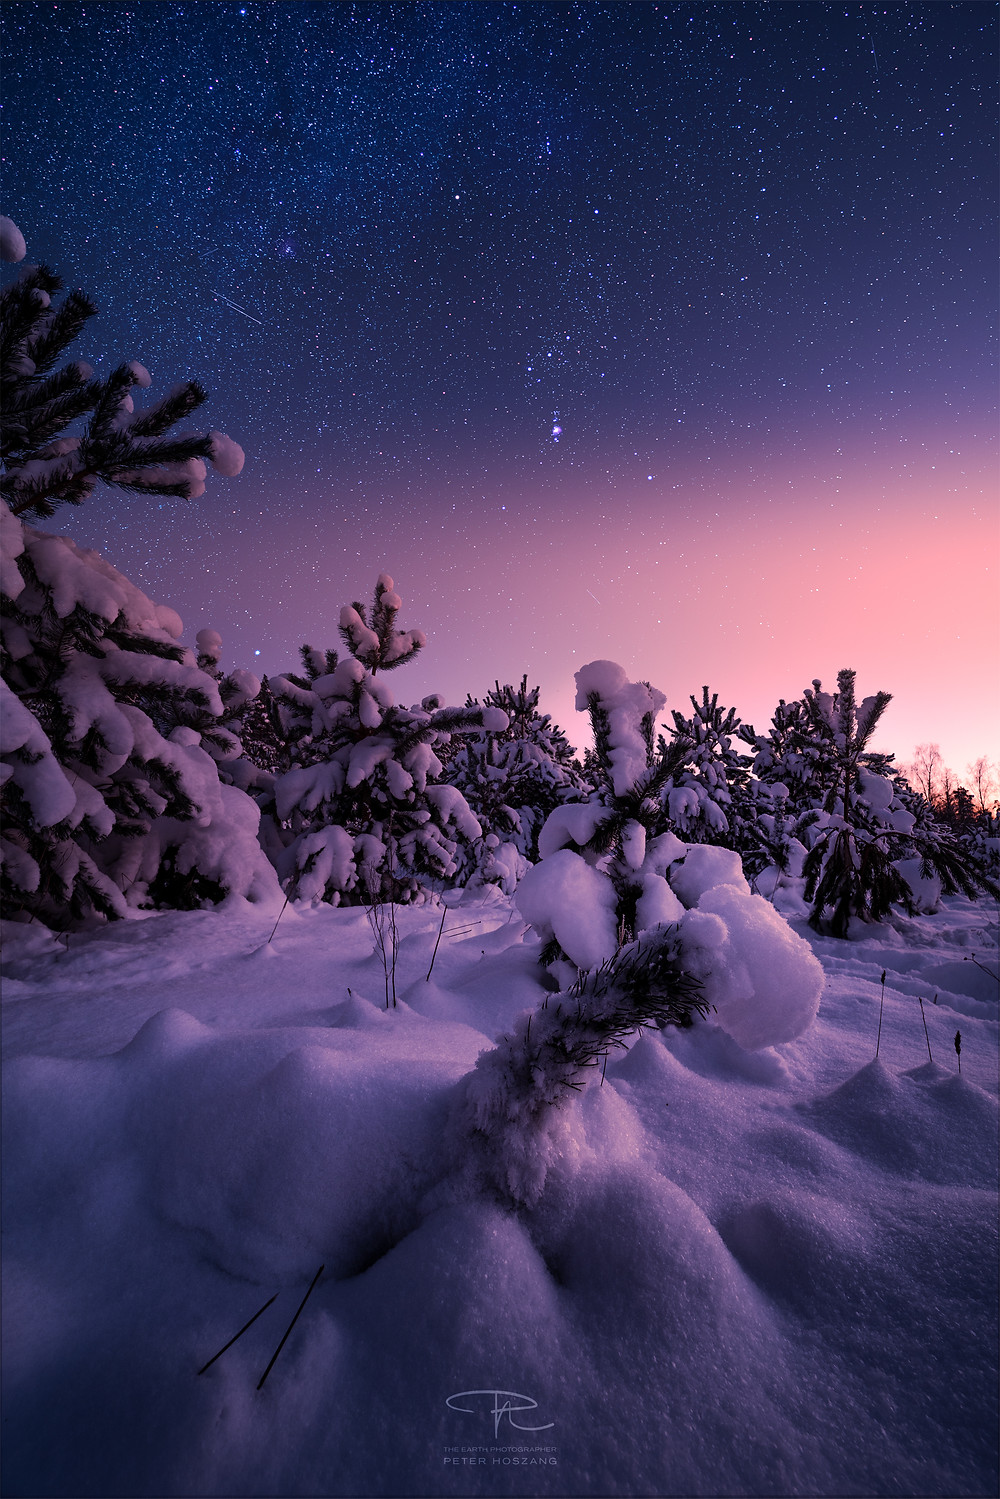 Snow covered pine trees during the Baltic dusk with Orion constellation visible in the starry sky